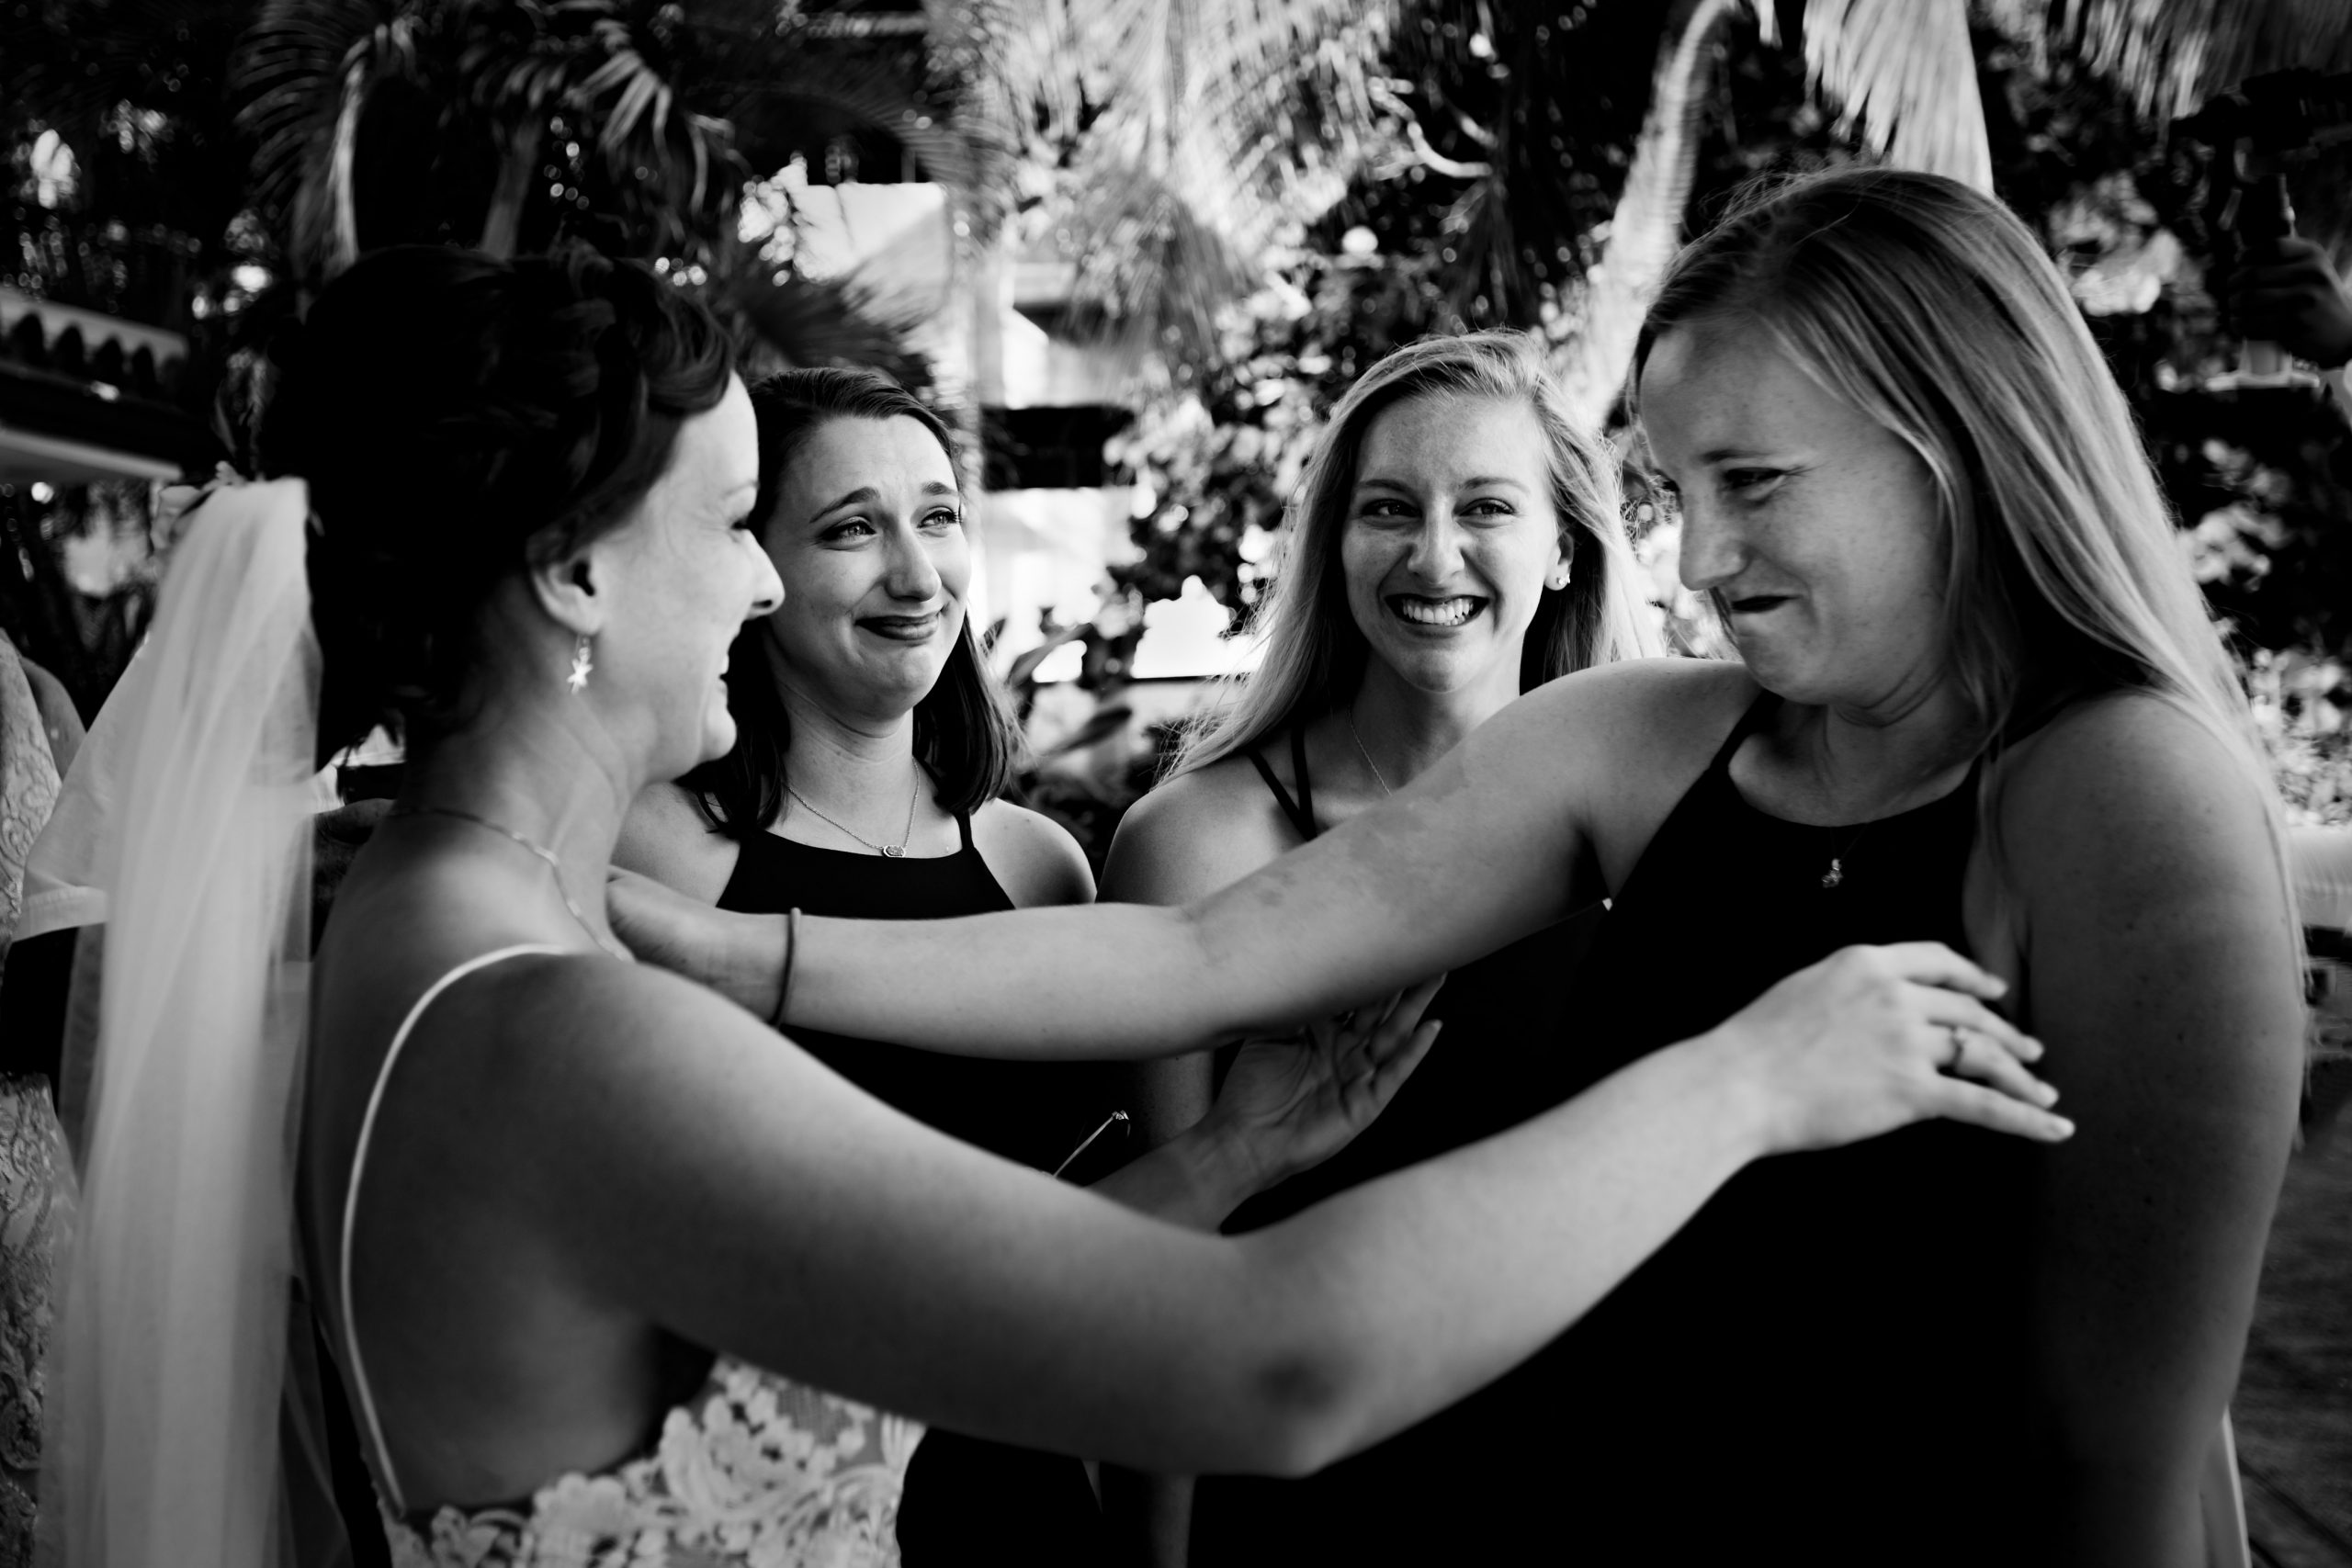 A bride chats with her emotional friends